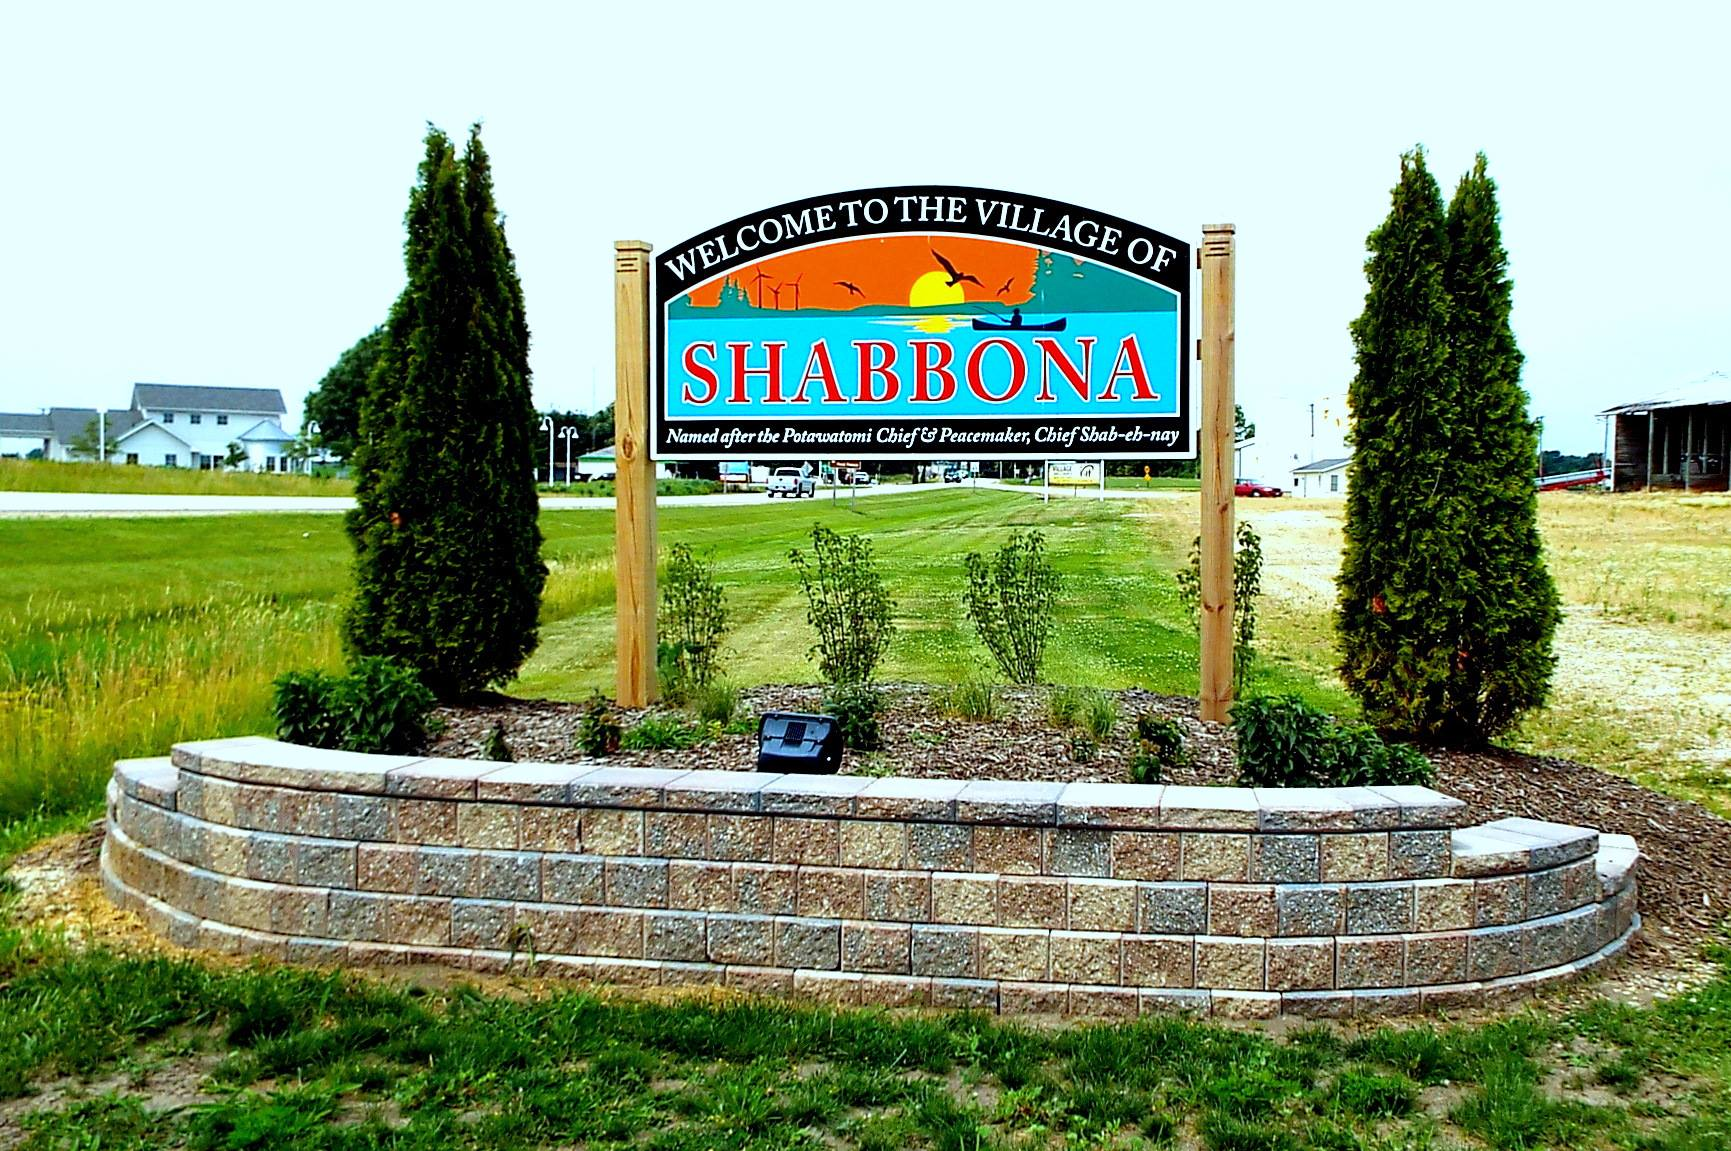 Welcome to Shabbona - New signs were installed in 2017